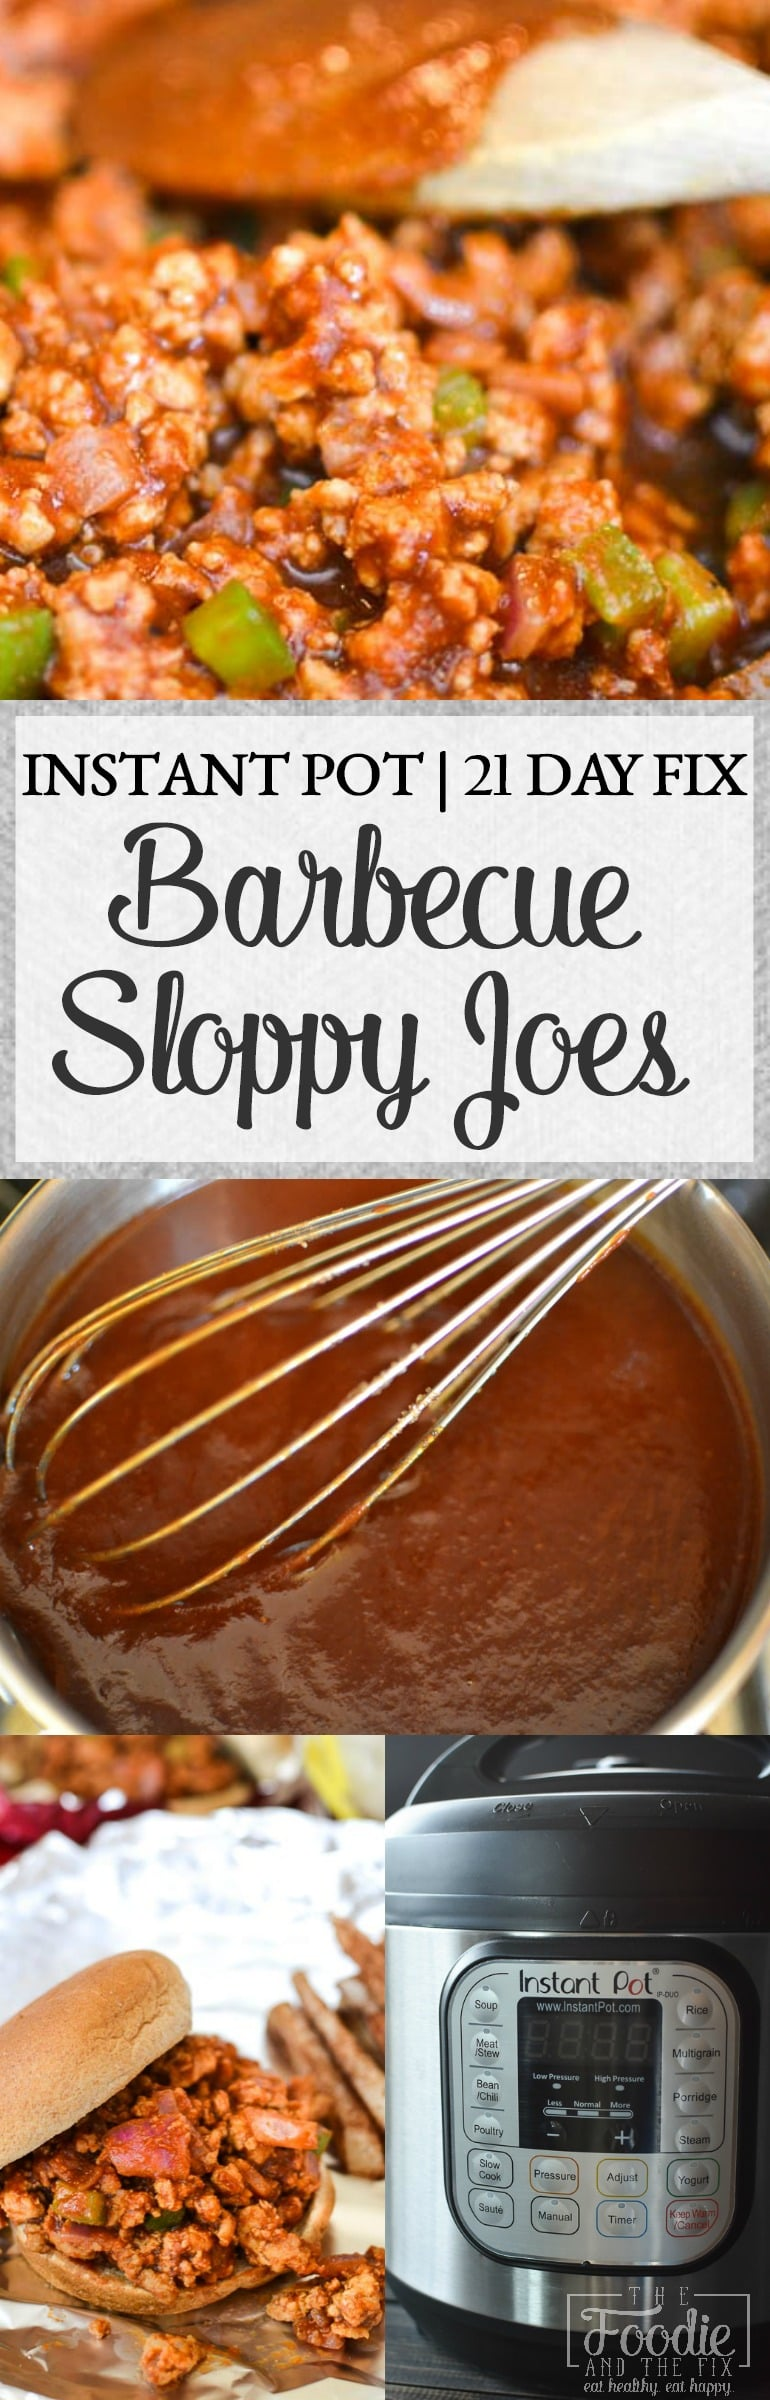 The sloppy joe gets a healthy, Manwich-freereboot in these delicious Instant Pot BBQ Sloppy Joes. This is one of our families favorite super fast kid-friendly dinners! Great for lunches and for meal prepping! #instantpot #quick #kidfriendly #healthy #21dayfix #dinner #lunch #mealprep #glutenfree